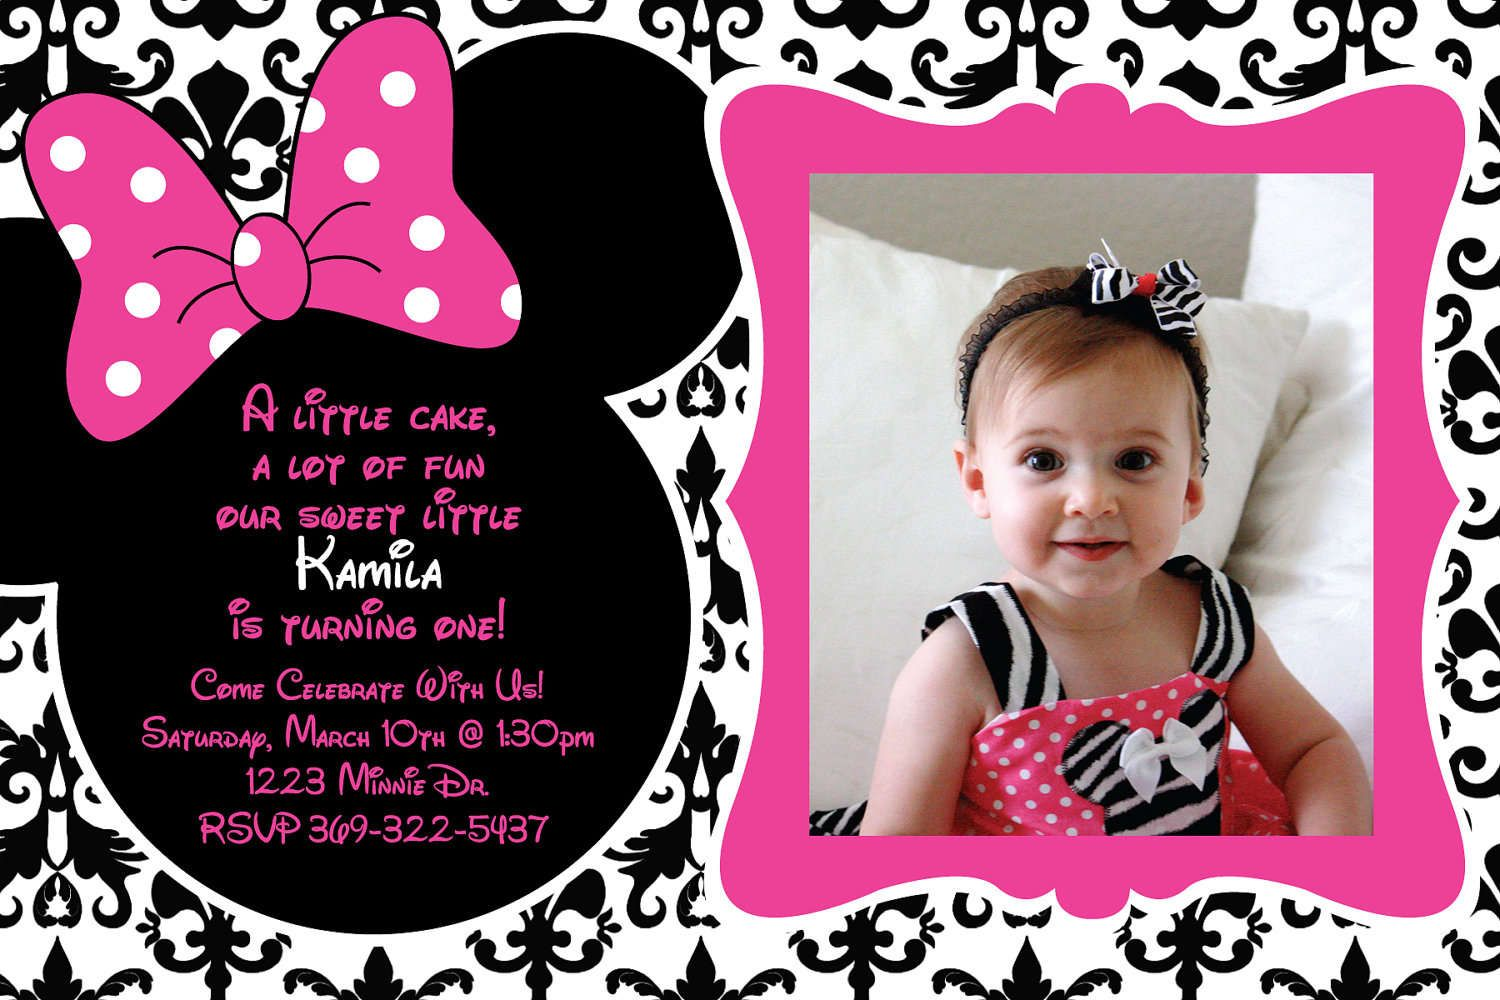 Free Birthday Invitation Templates Minnie Mouse | ariannas birthday ...